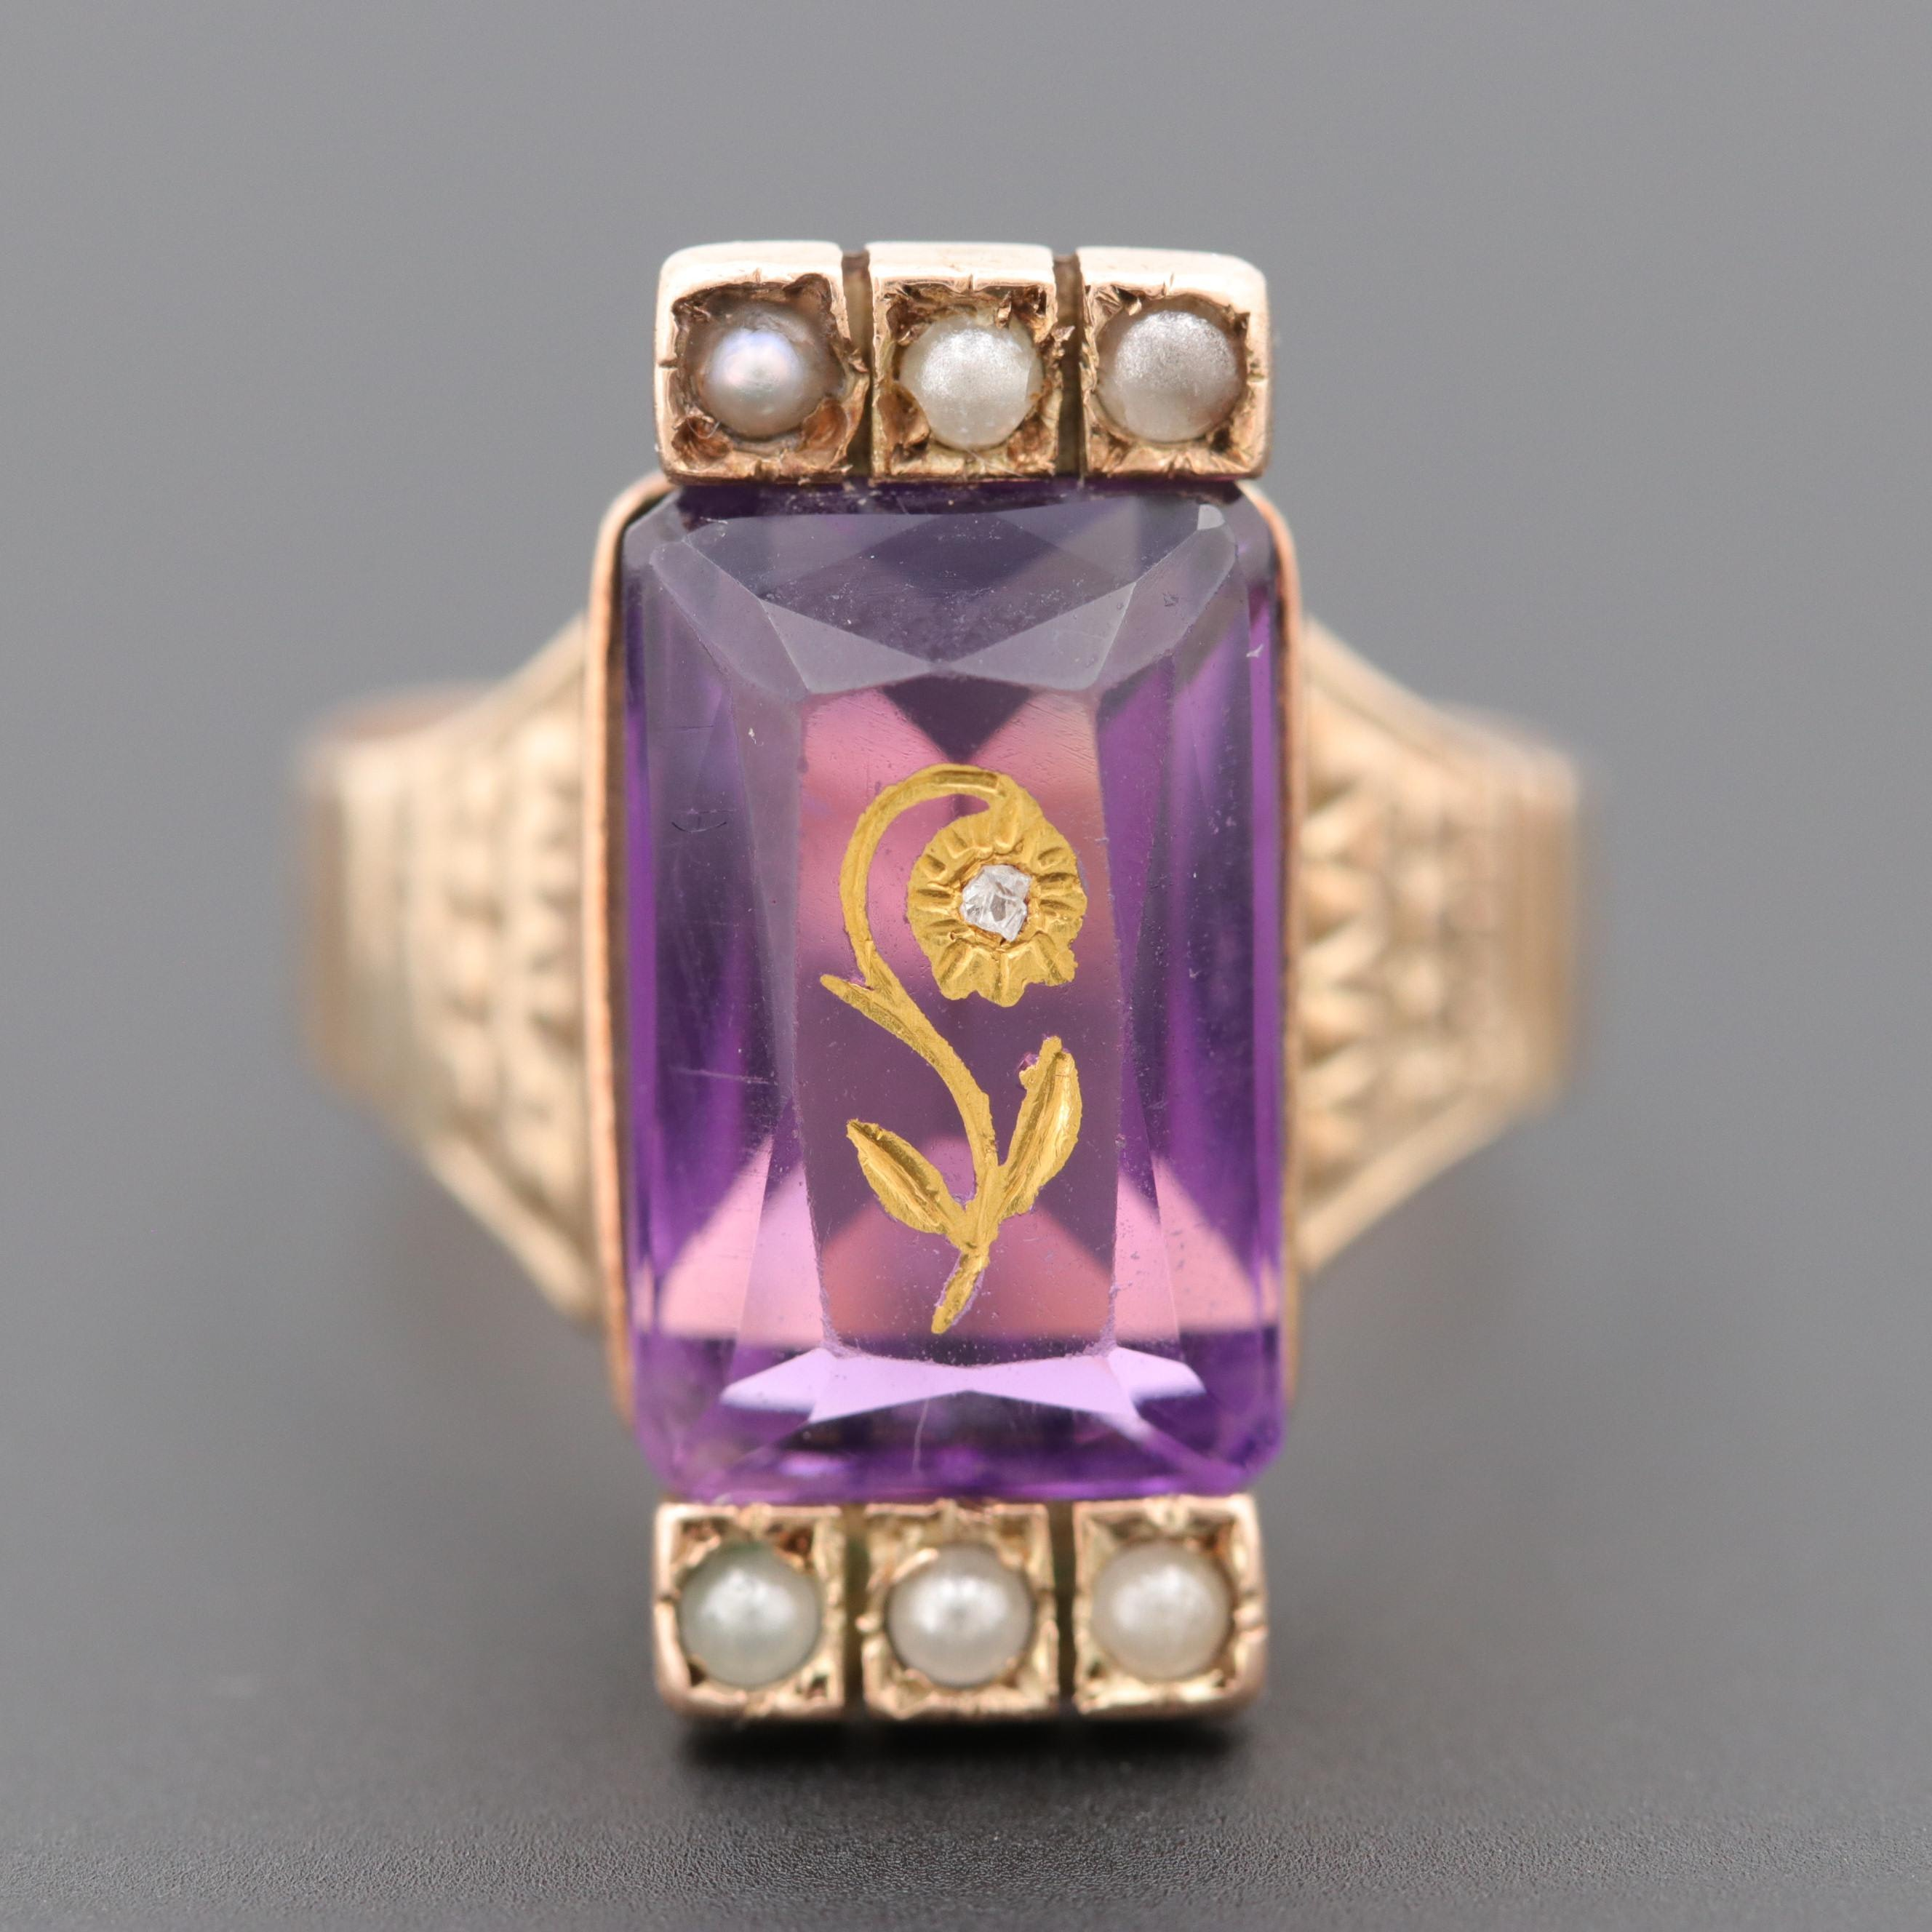 Circa 1870s Victorian 10K Yellow Gold Amethyst, Diamond and Cultured Pearl Ring